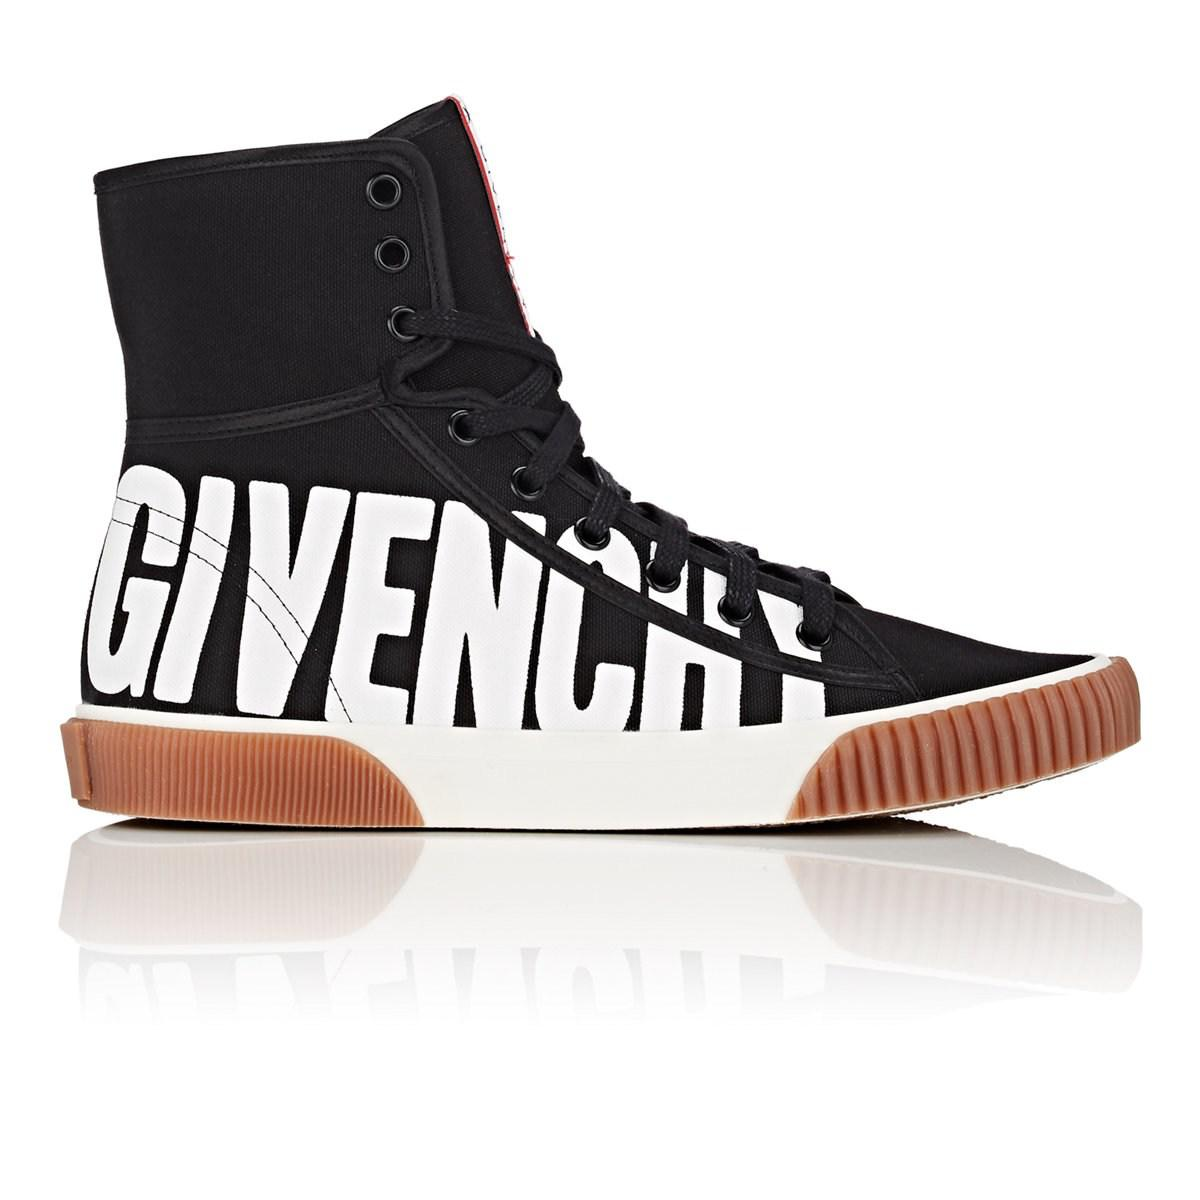 Givenchy Canvas Boxing Sneakers in